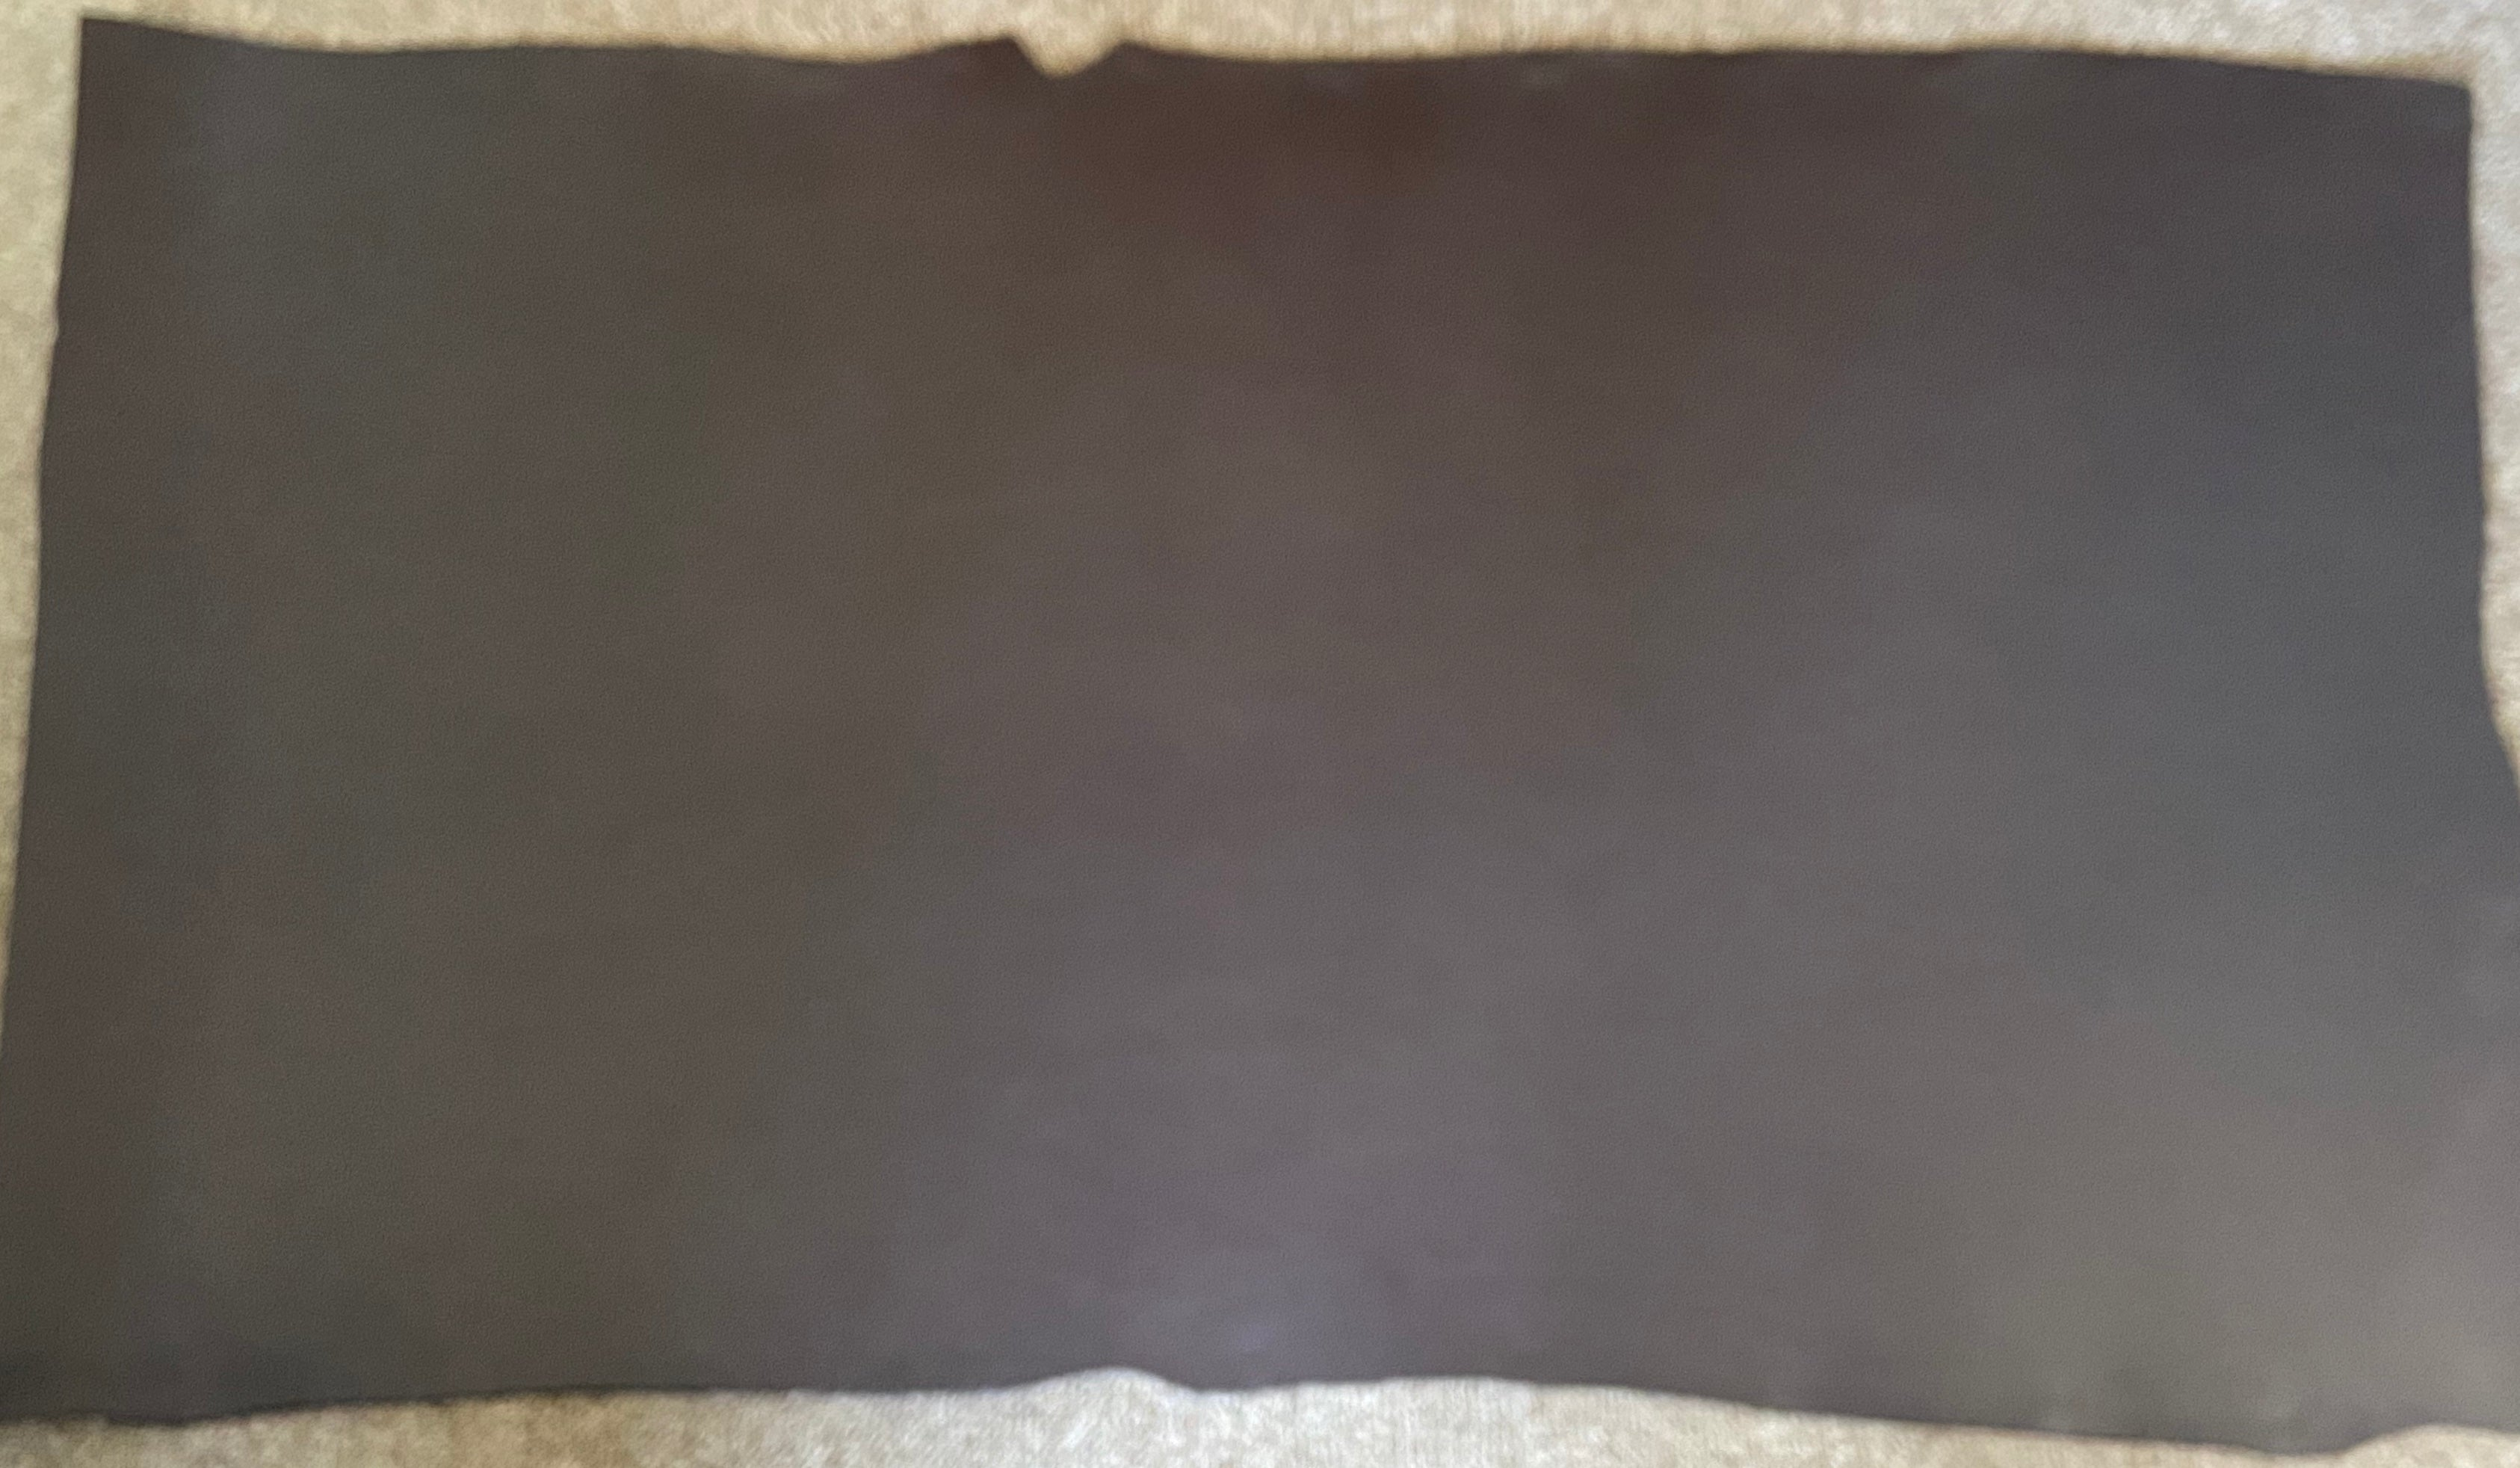 Brown Veg Tan Trimmed Leather Cow Shoulder : (3.0-3.5mm 7-8oz) Perfect For Leather Belts , Leather Shoes , Leather Knife Sheaths , Leather Crafts , Leather Accessories.